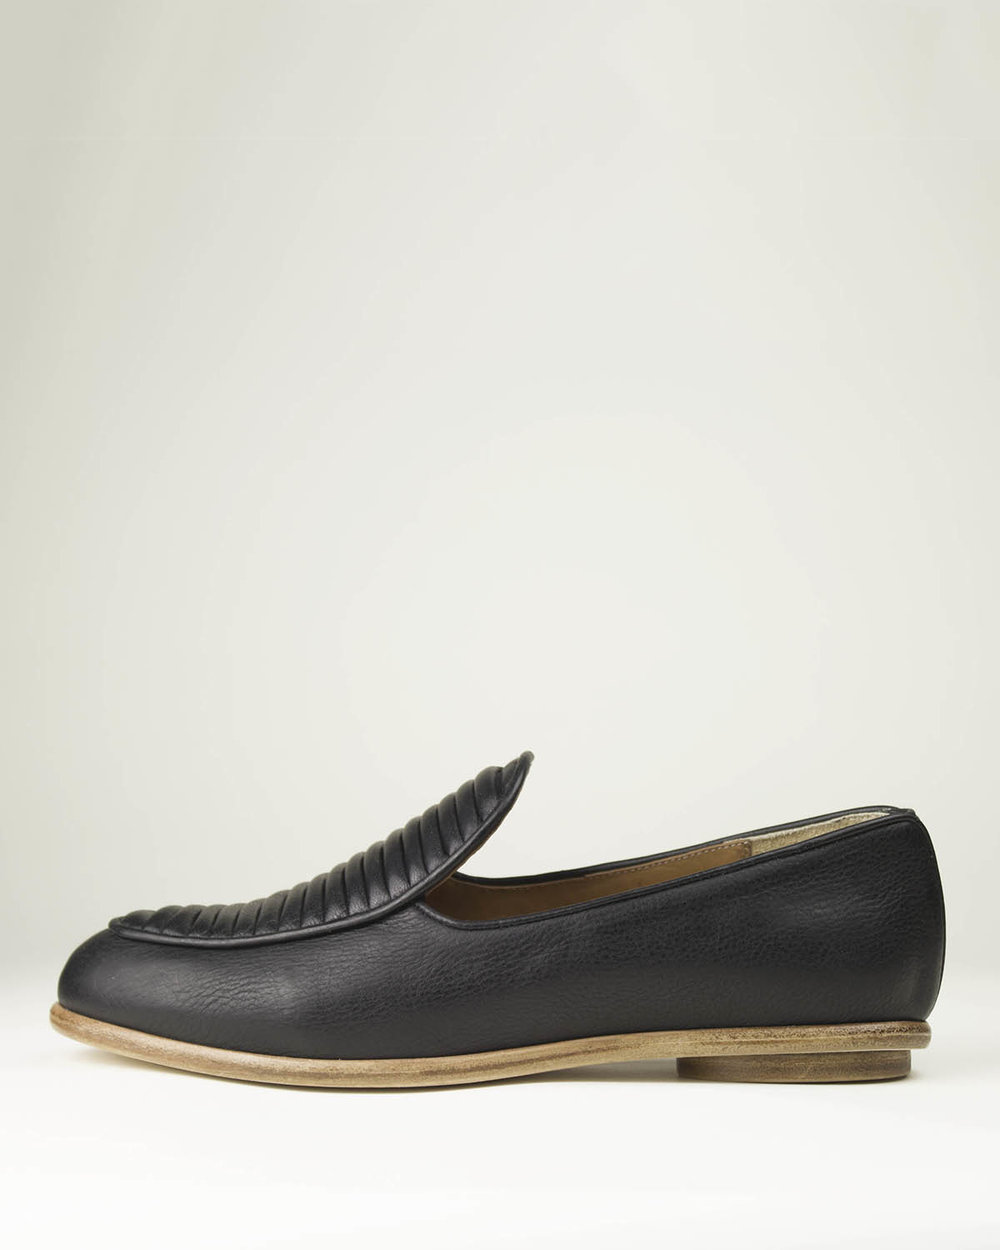 corie humble shoe design collection seoul korea portfolio loafer